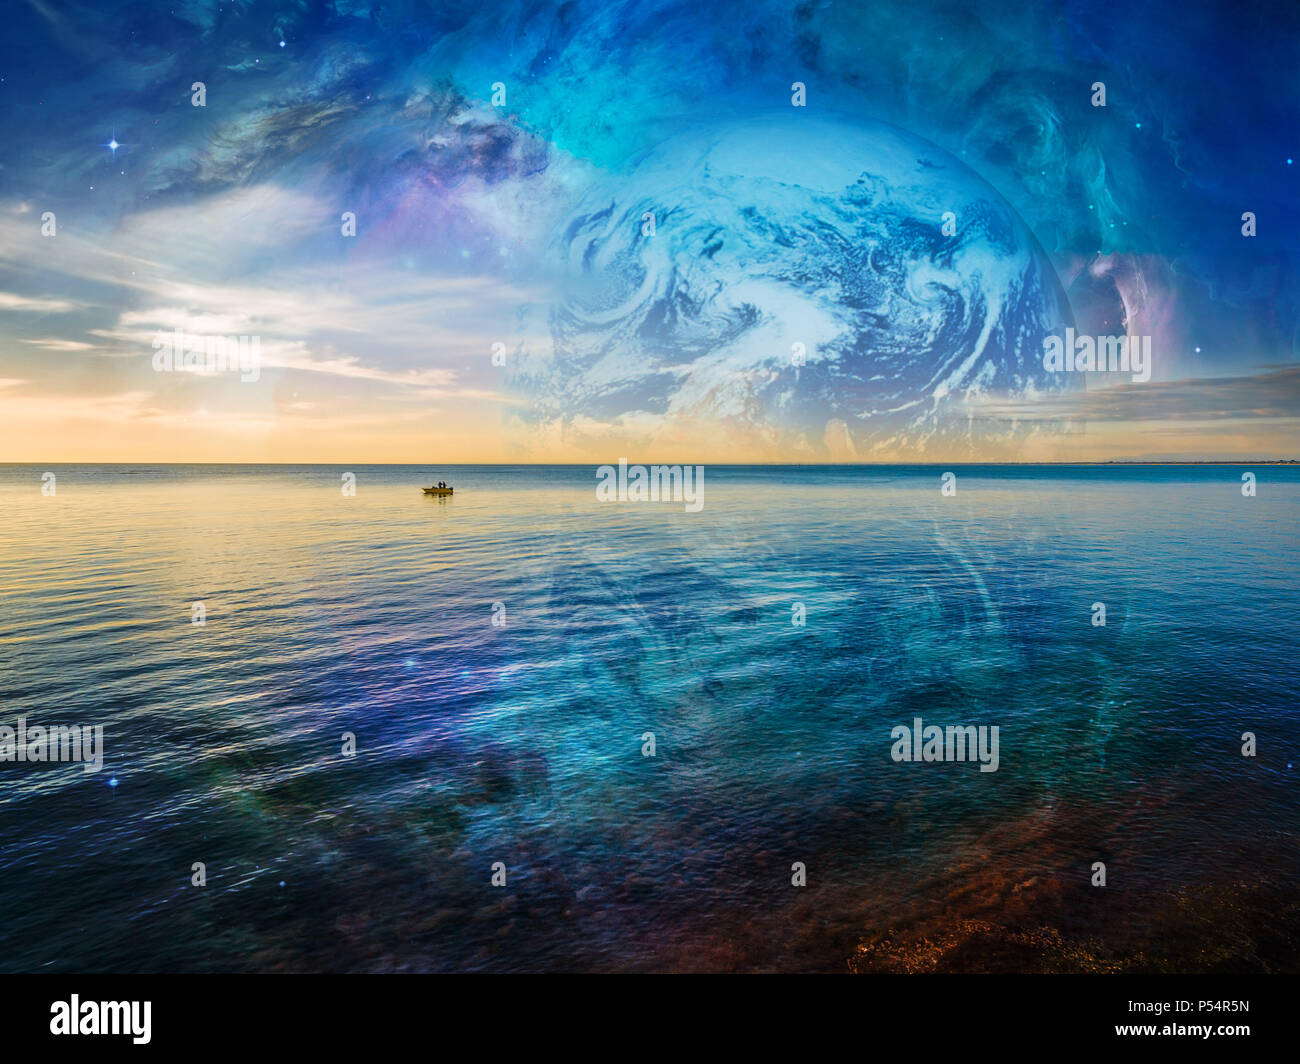 Fantasy landscape - lonely fishing boat floating on tranquil ocean water with planet and galaxy in the skies. Elements of this image are furnished by  - Stock Image